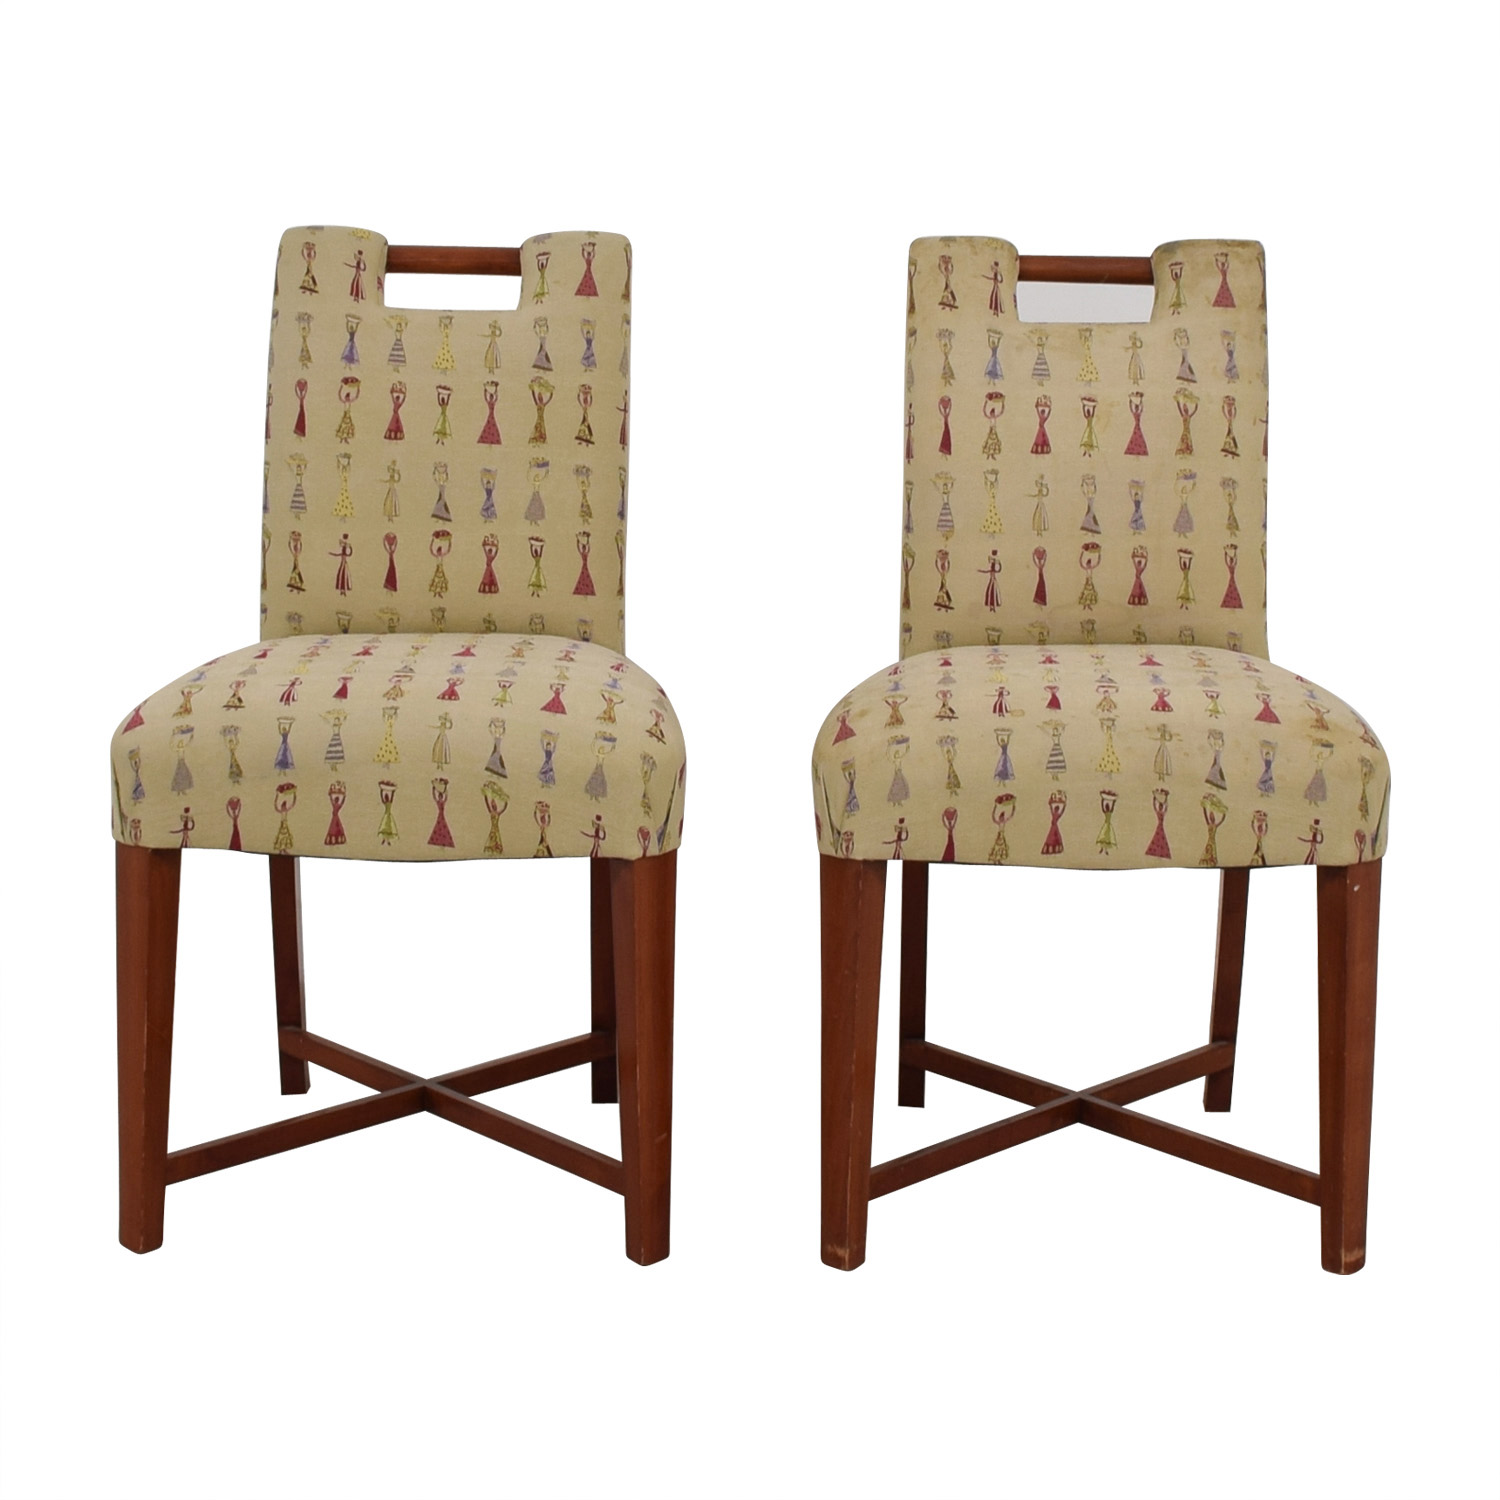 Furniture Masters Furniture Masters Embroidered Dress Accent Chairs on sale